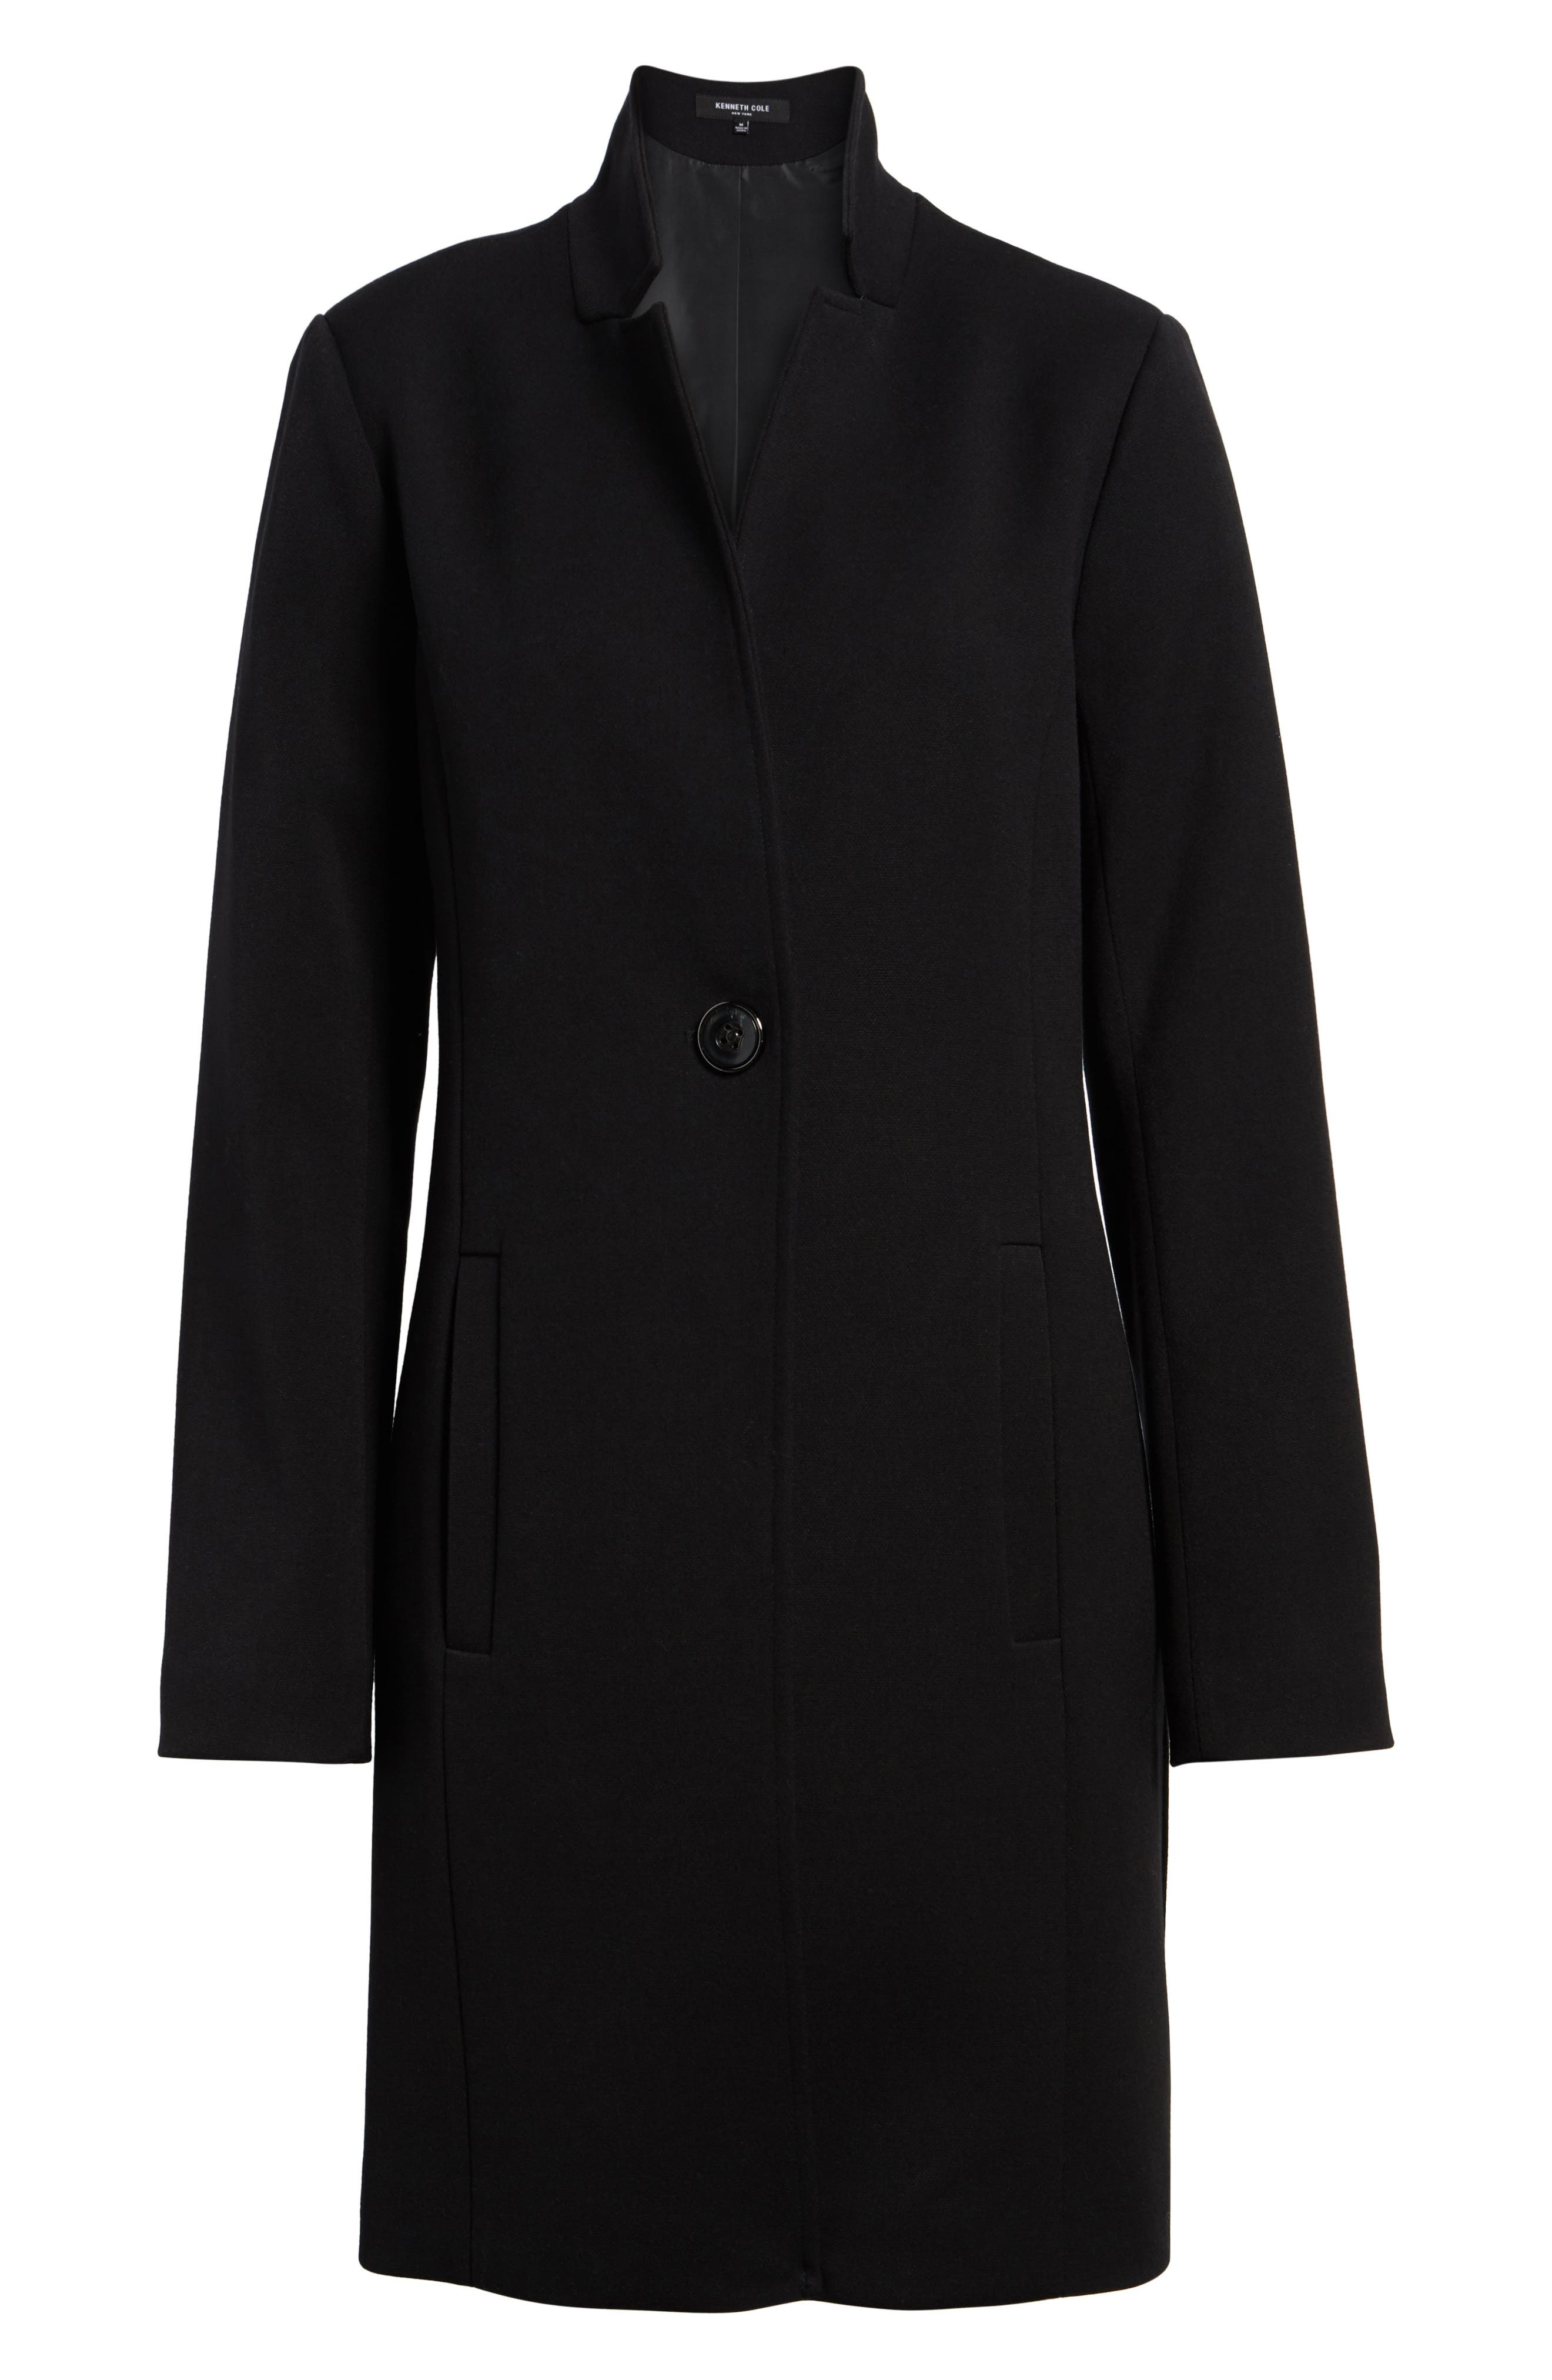 Ponte Knit Duster Jacket,                             Alternate thumbnail 7, color,                             Black